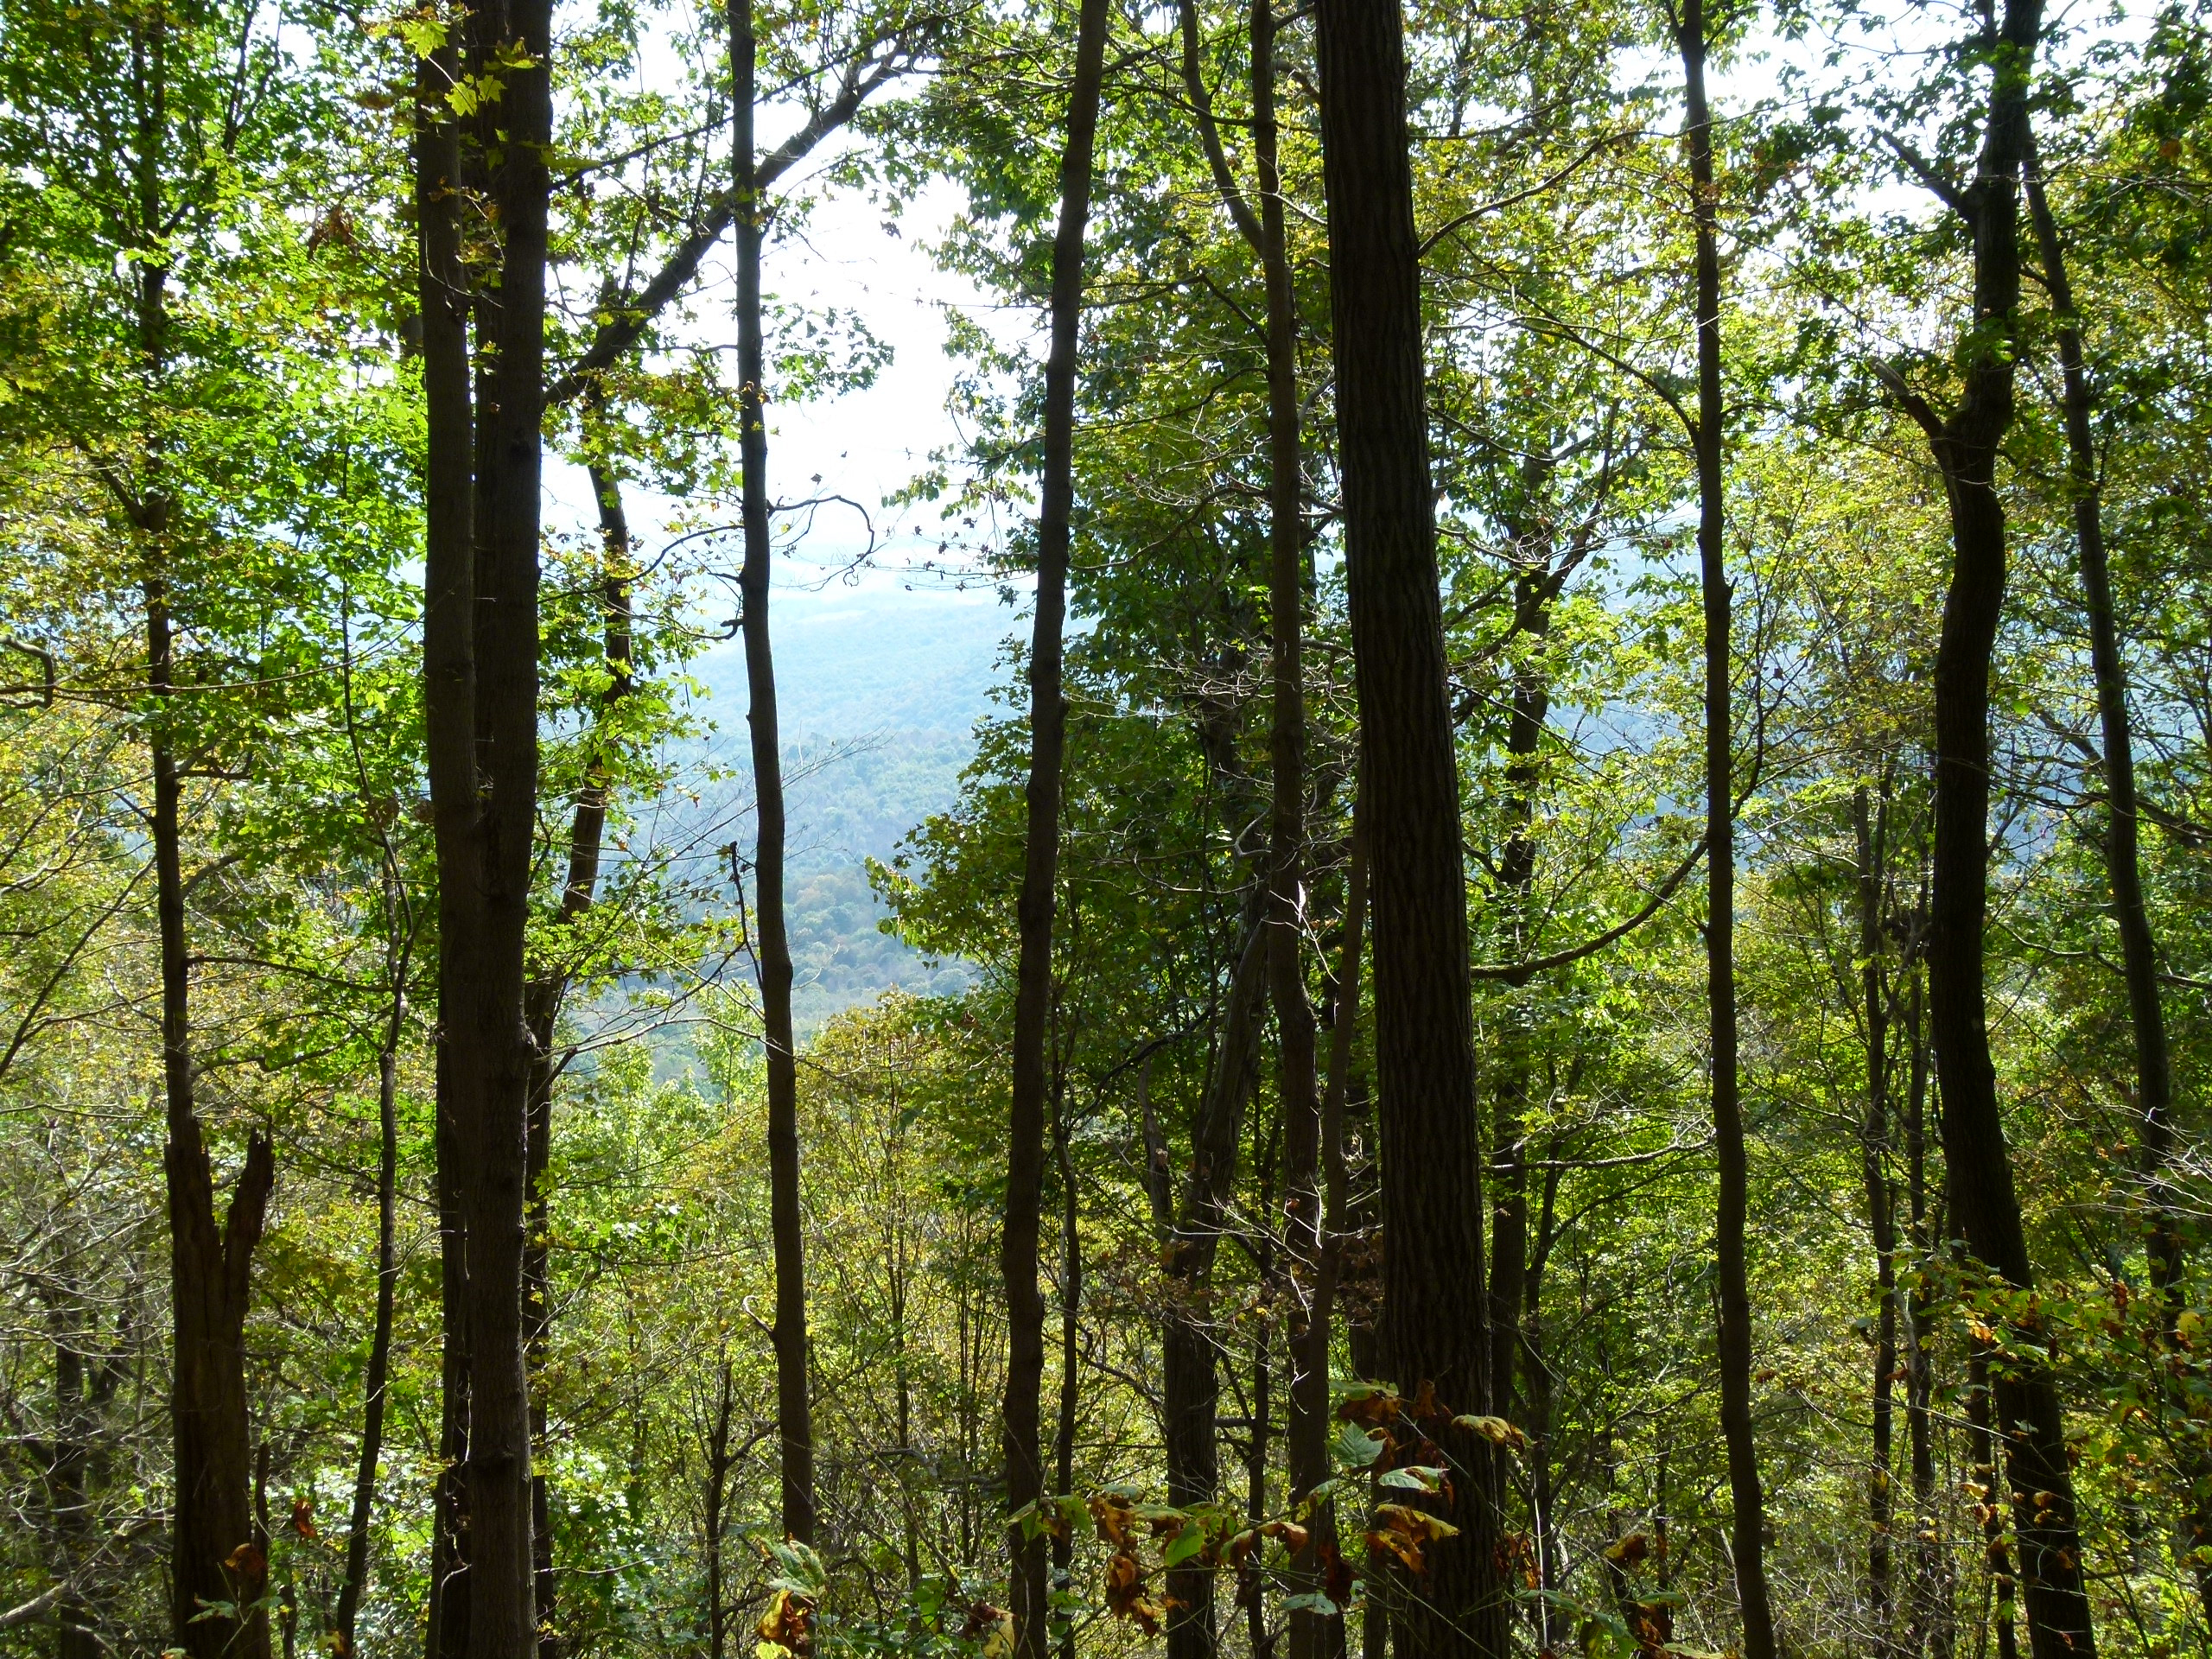 You can see the next mountain over through the gap in the tree canopy.